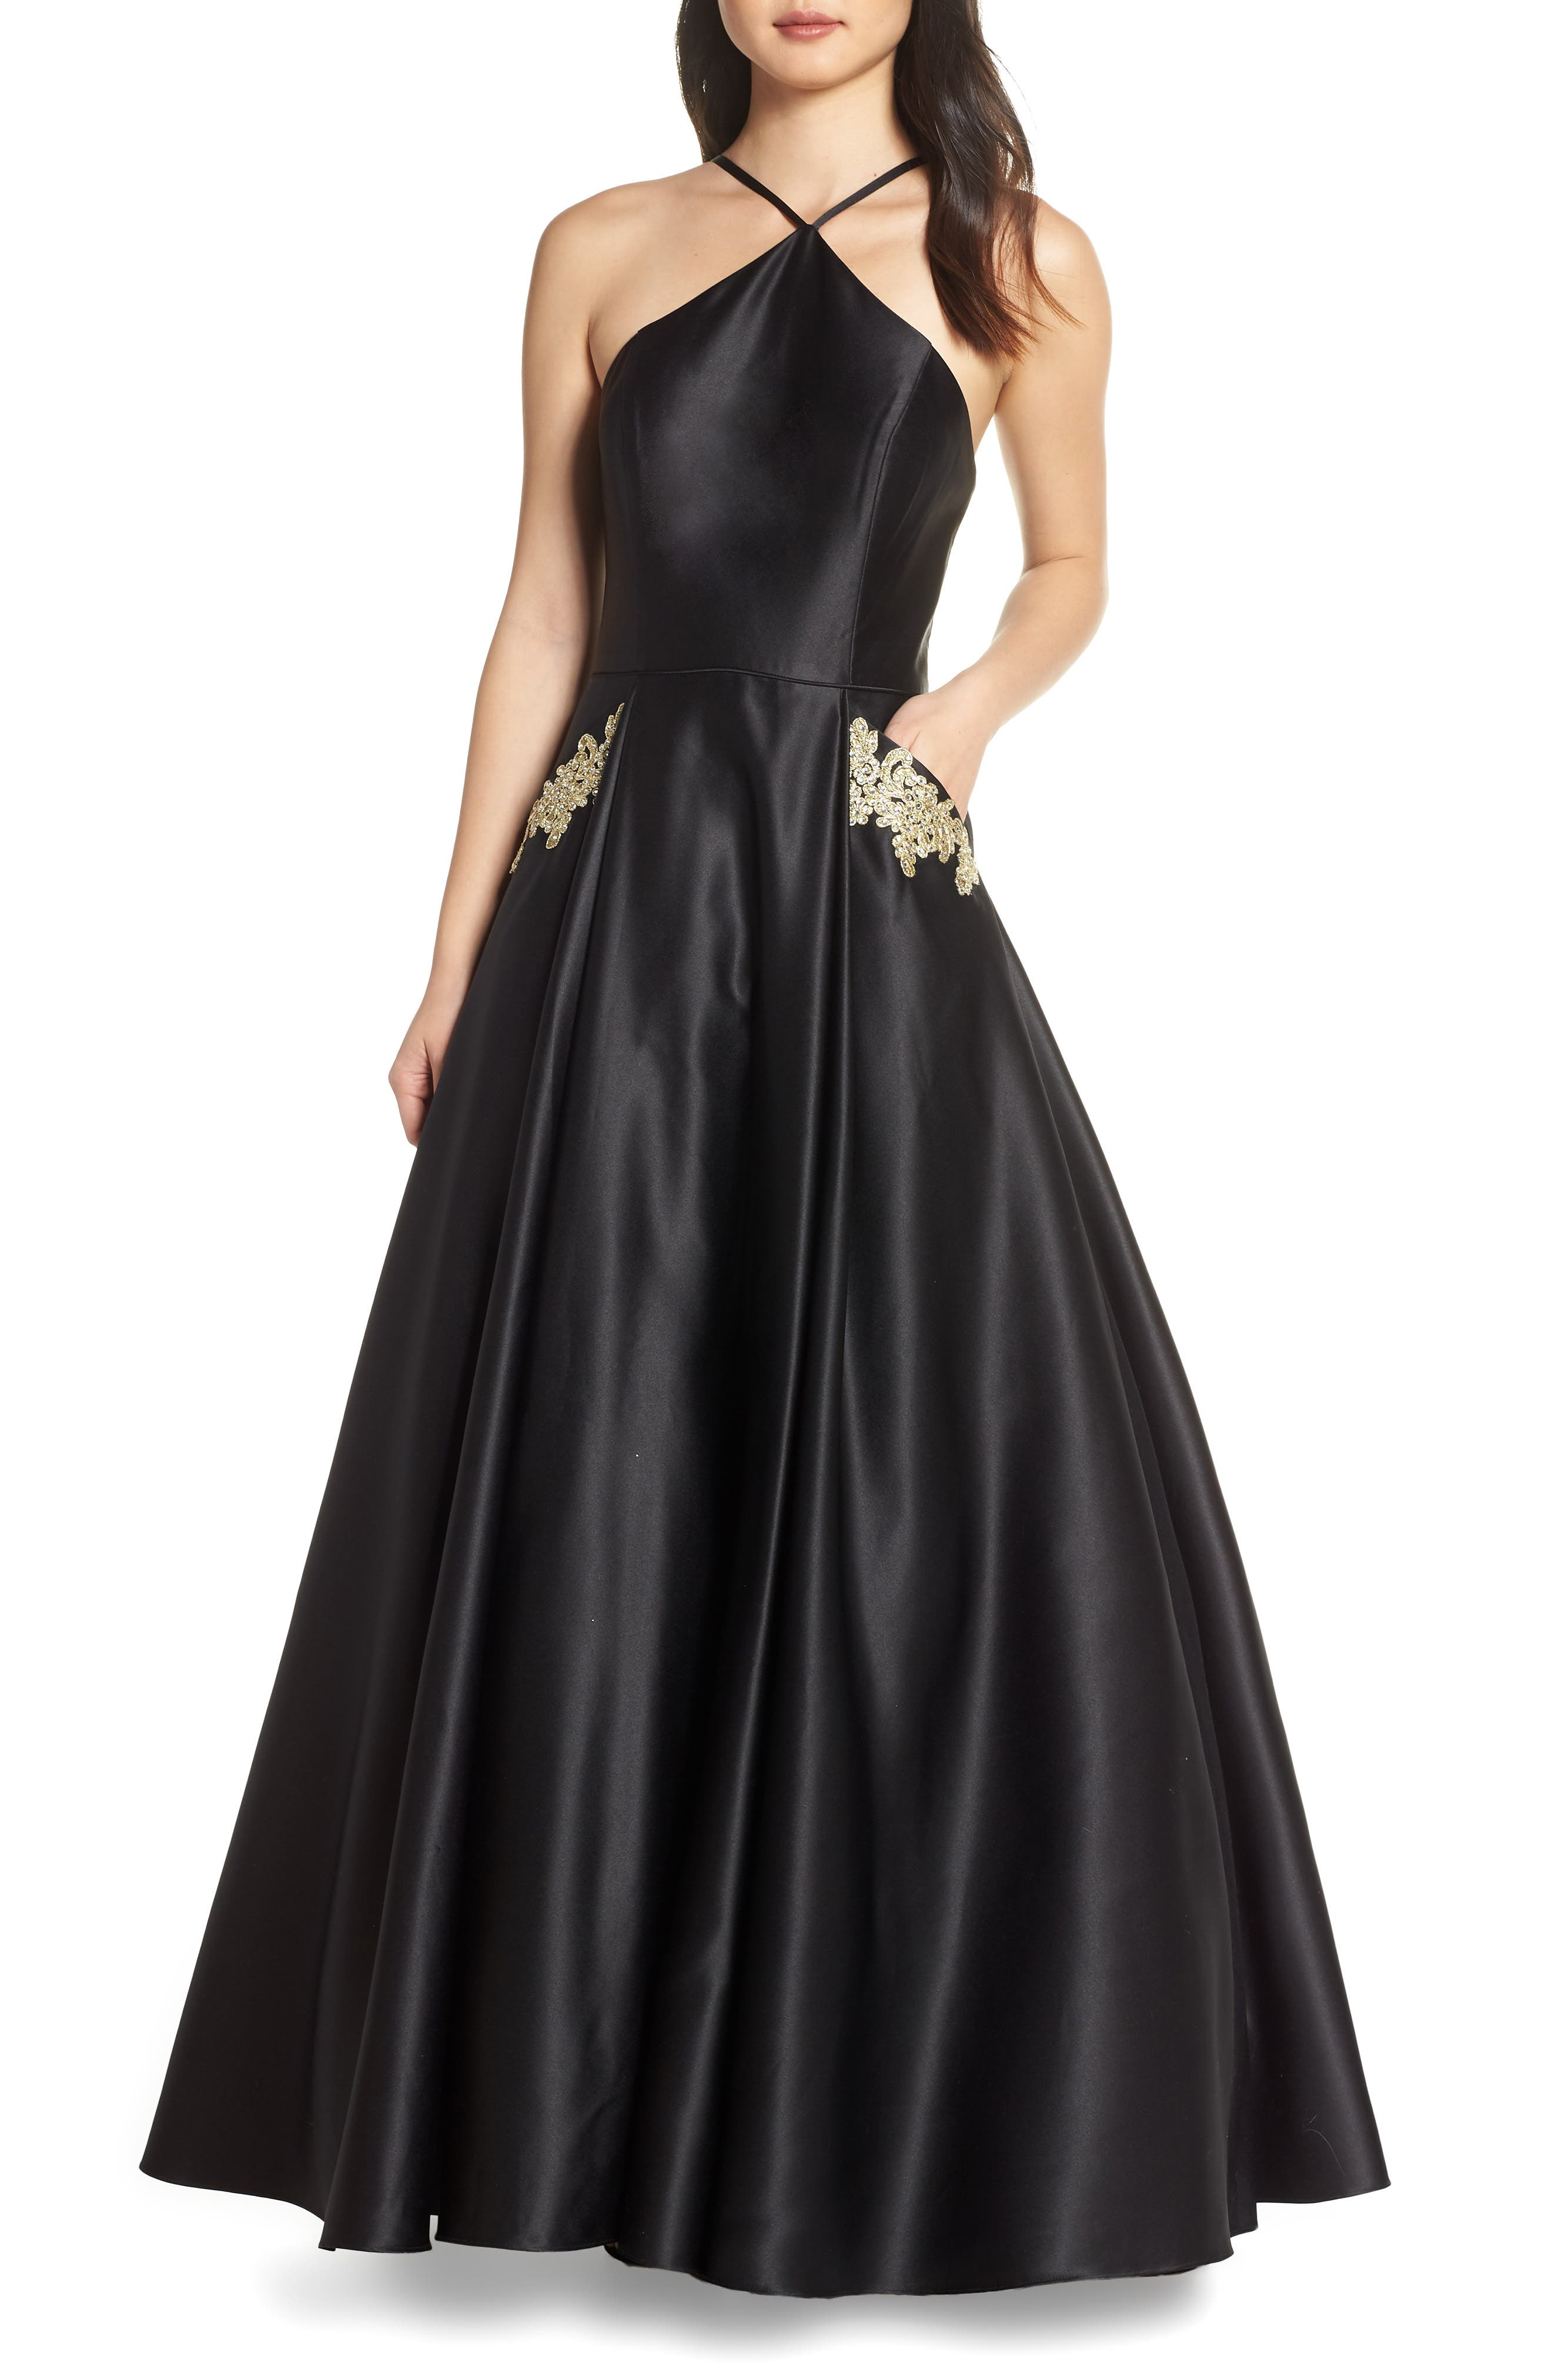 Blondie Nites Halter Neck Embellished Pocket Satin Evening Dress, Yellow